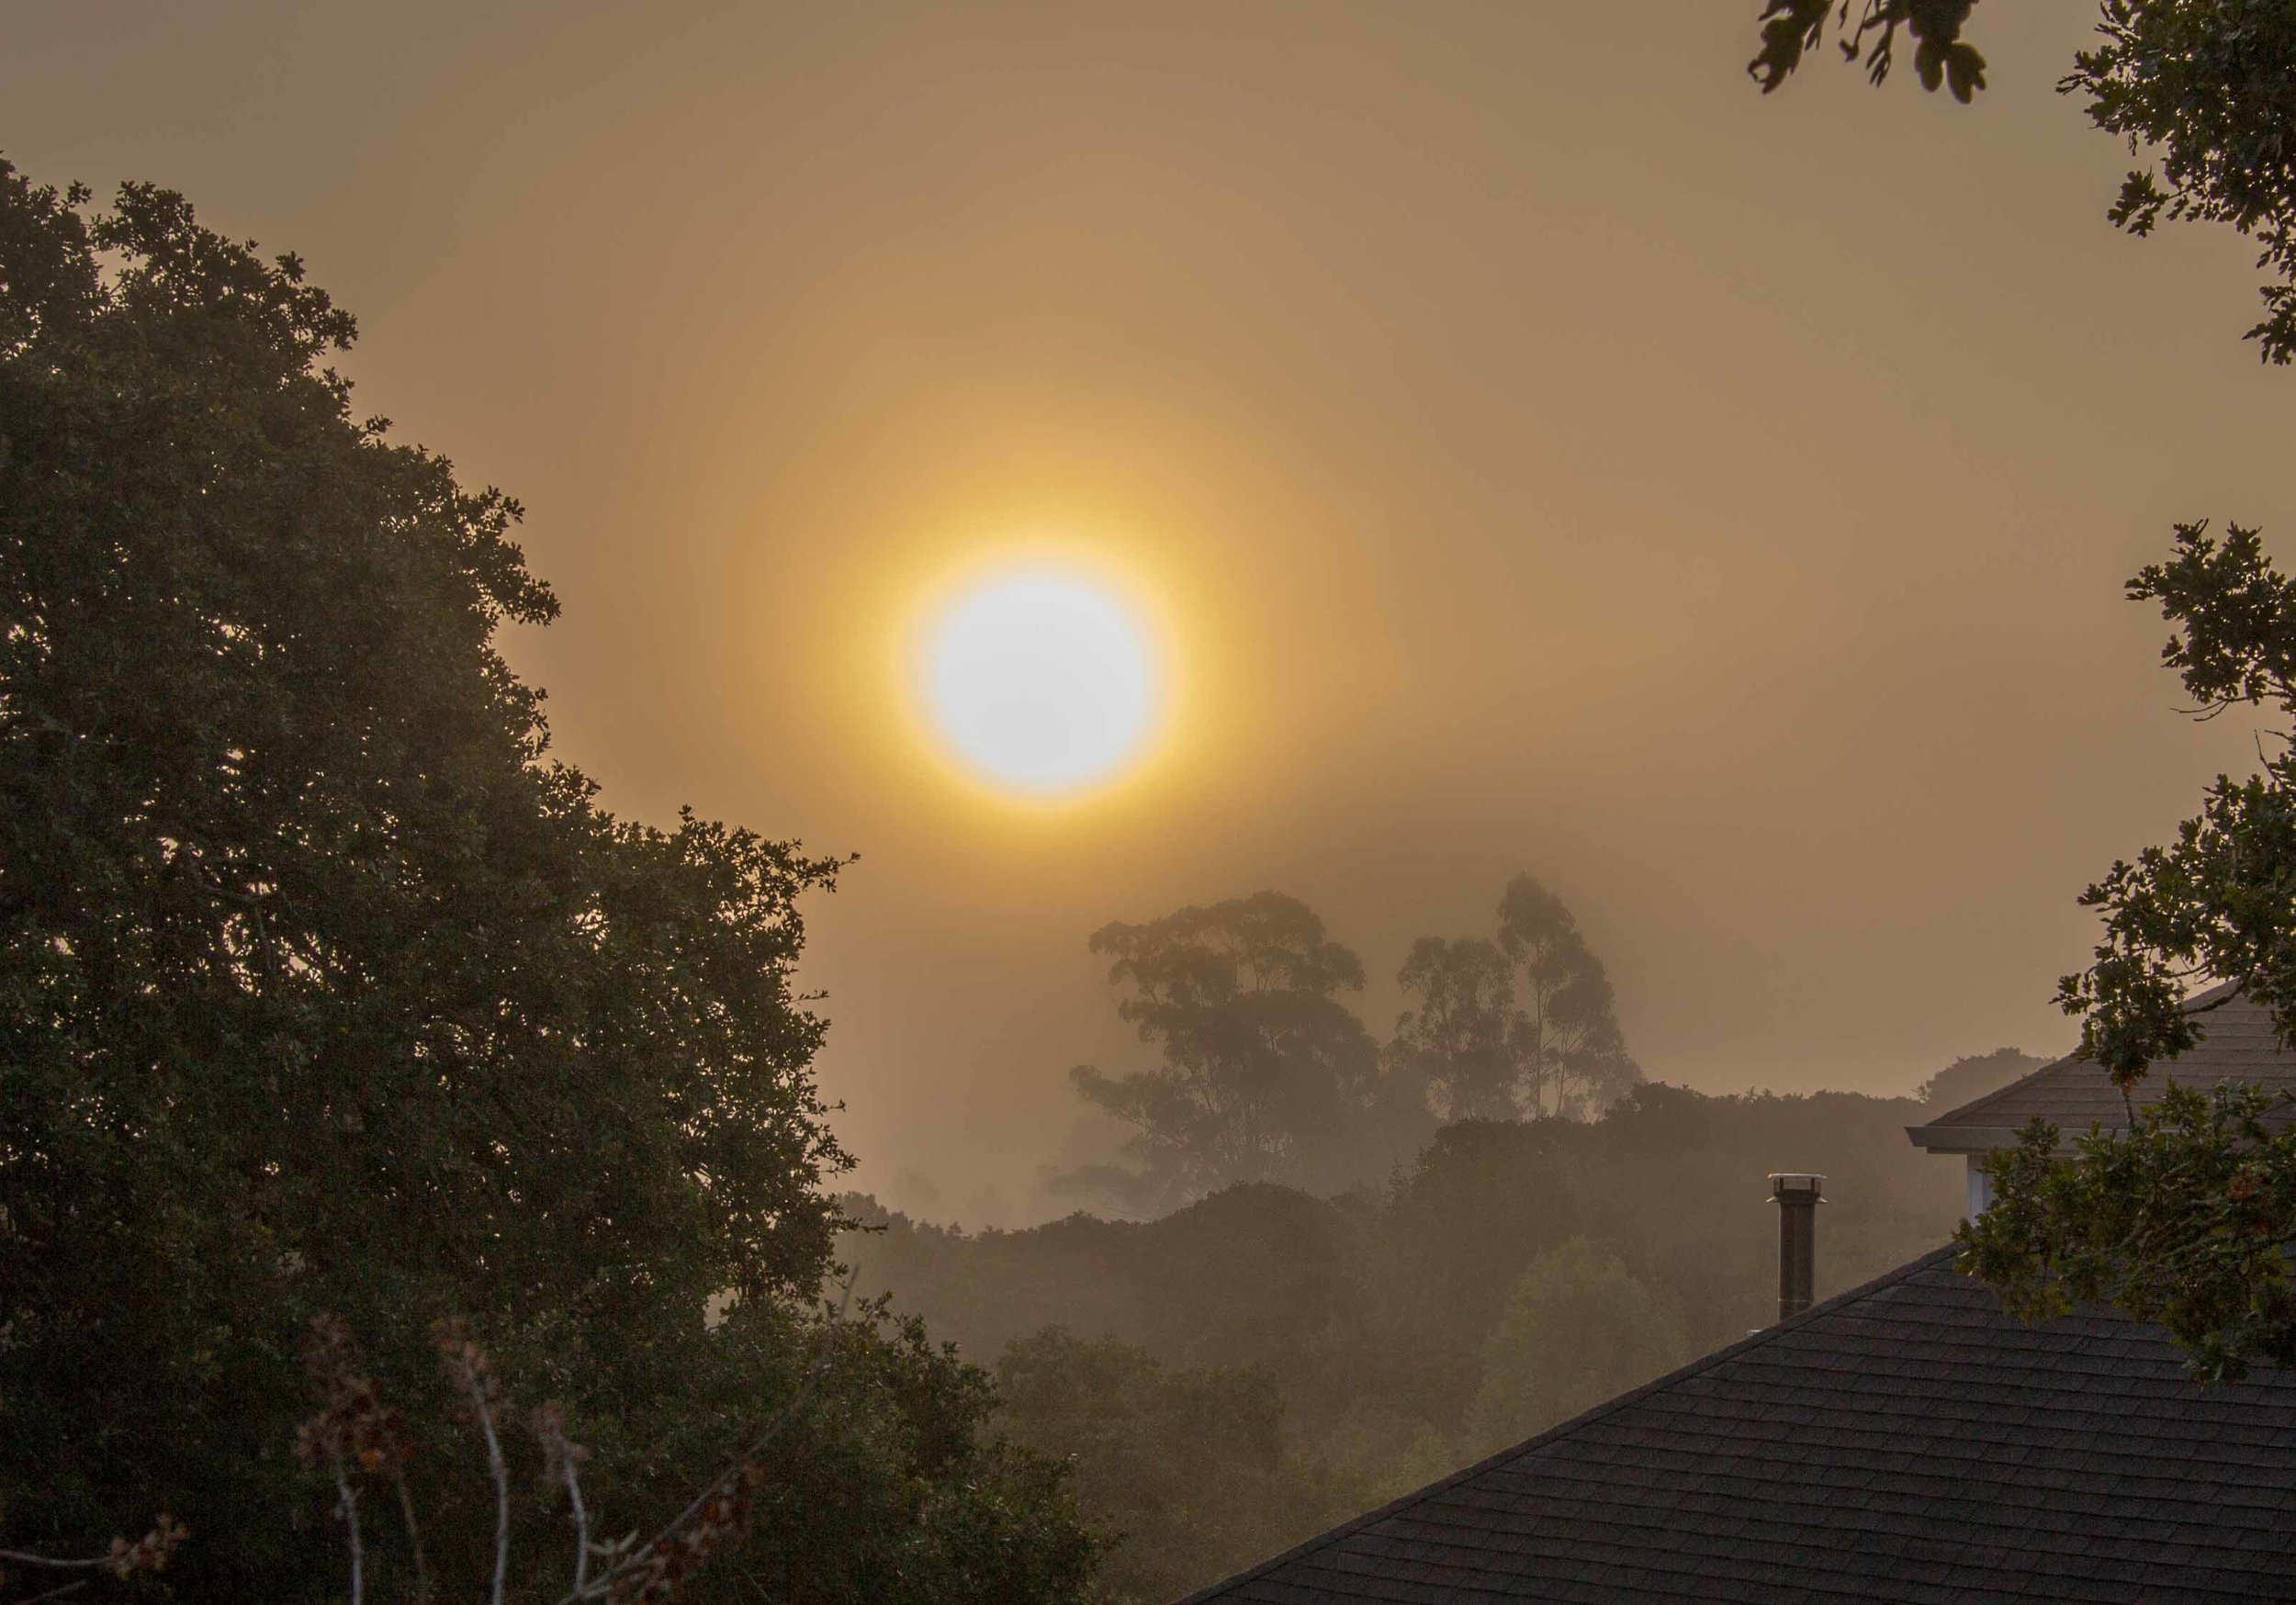 The hazy early morning sun silhouetting trees in the distance